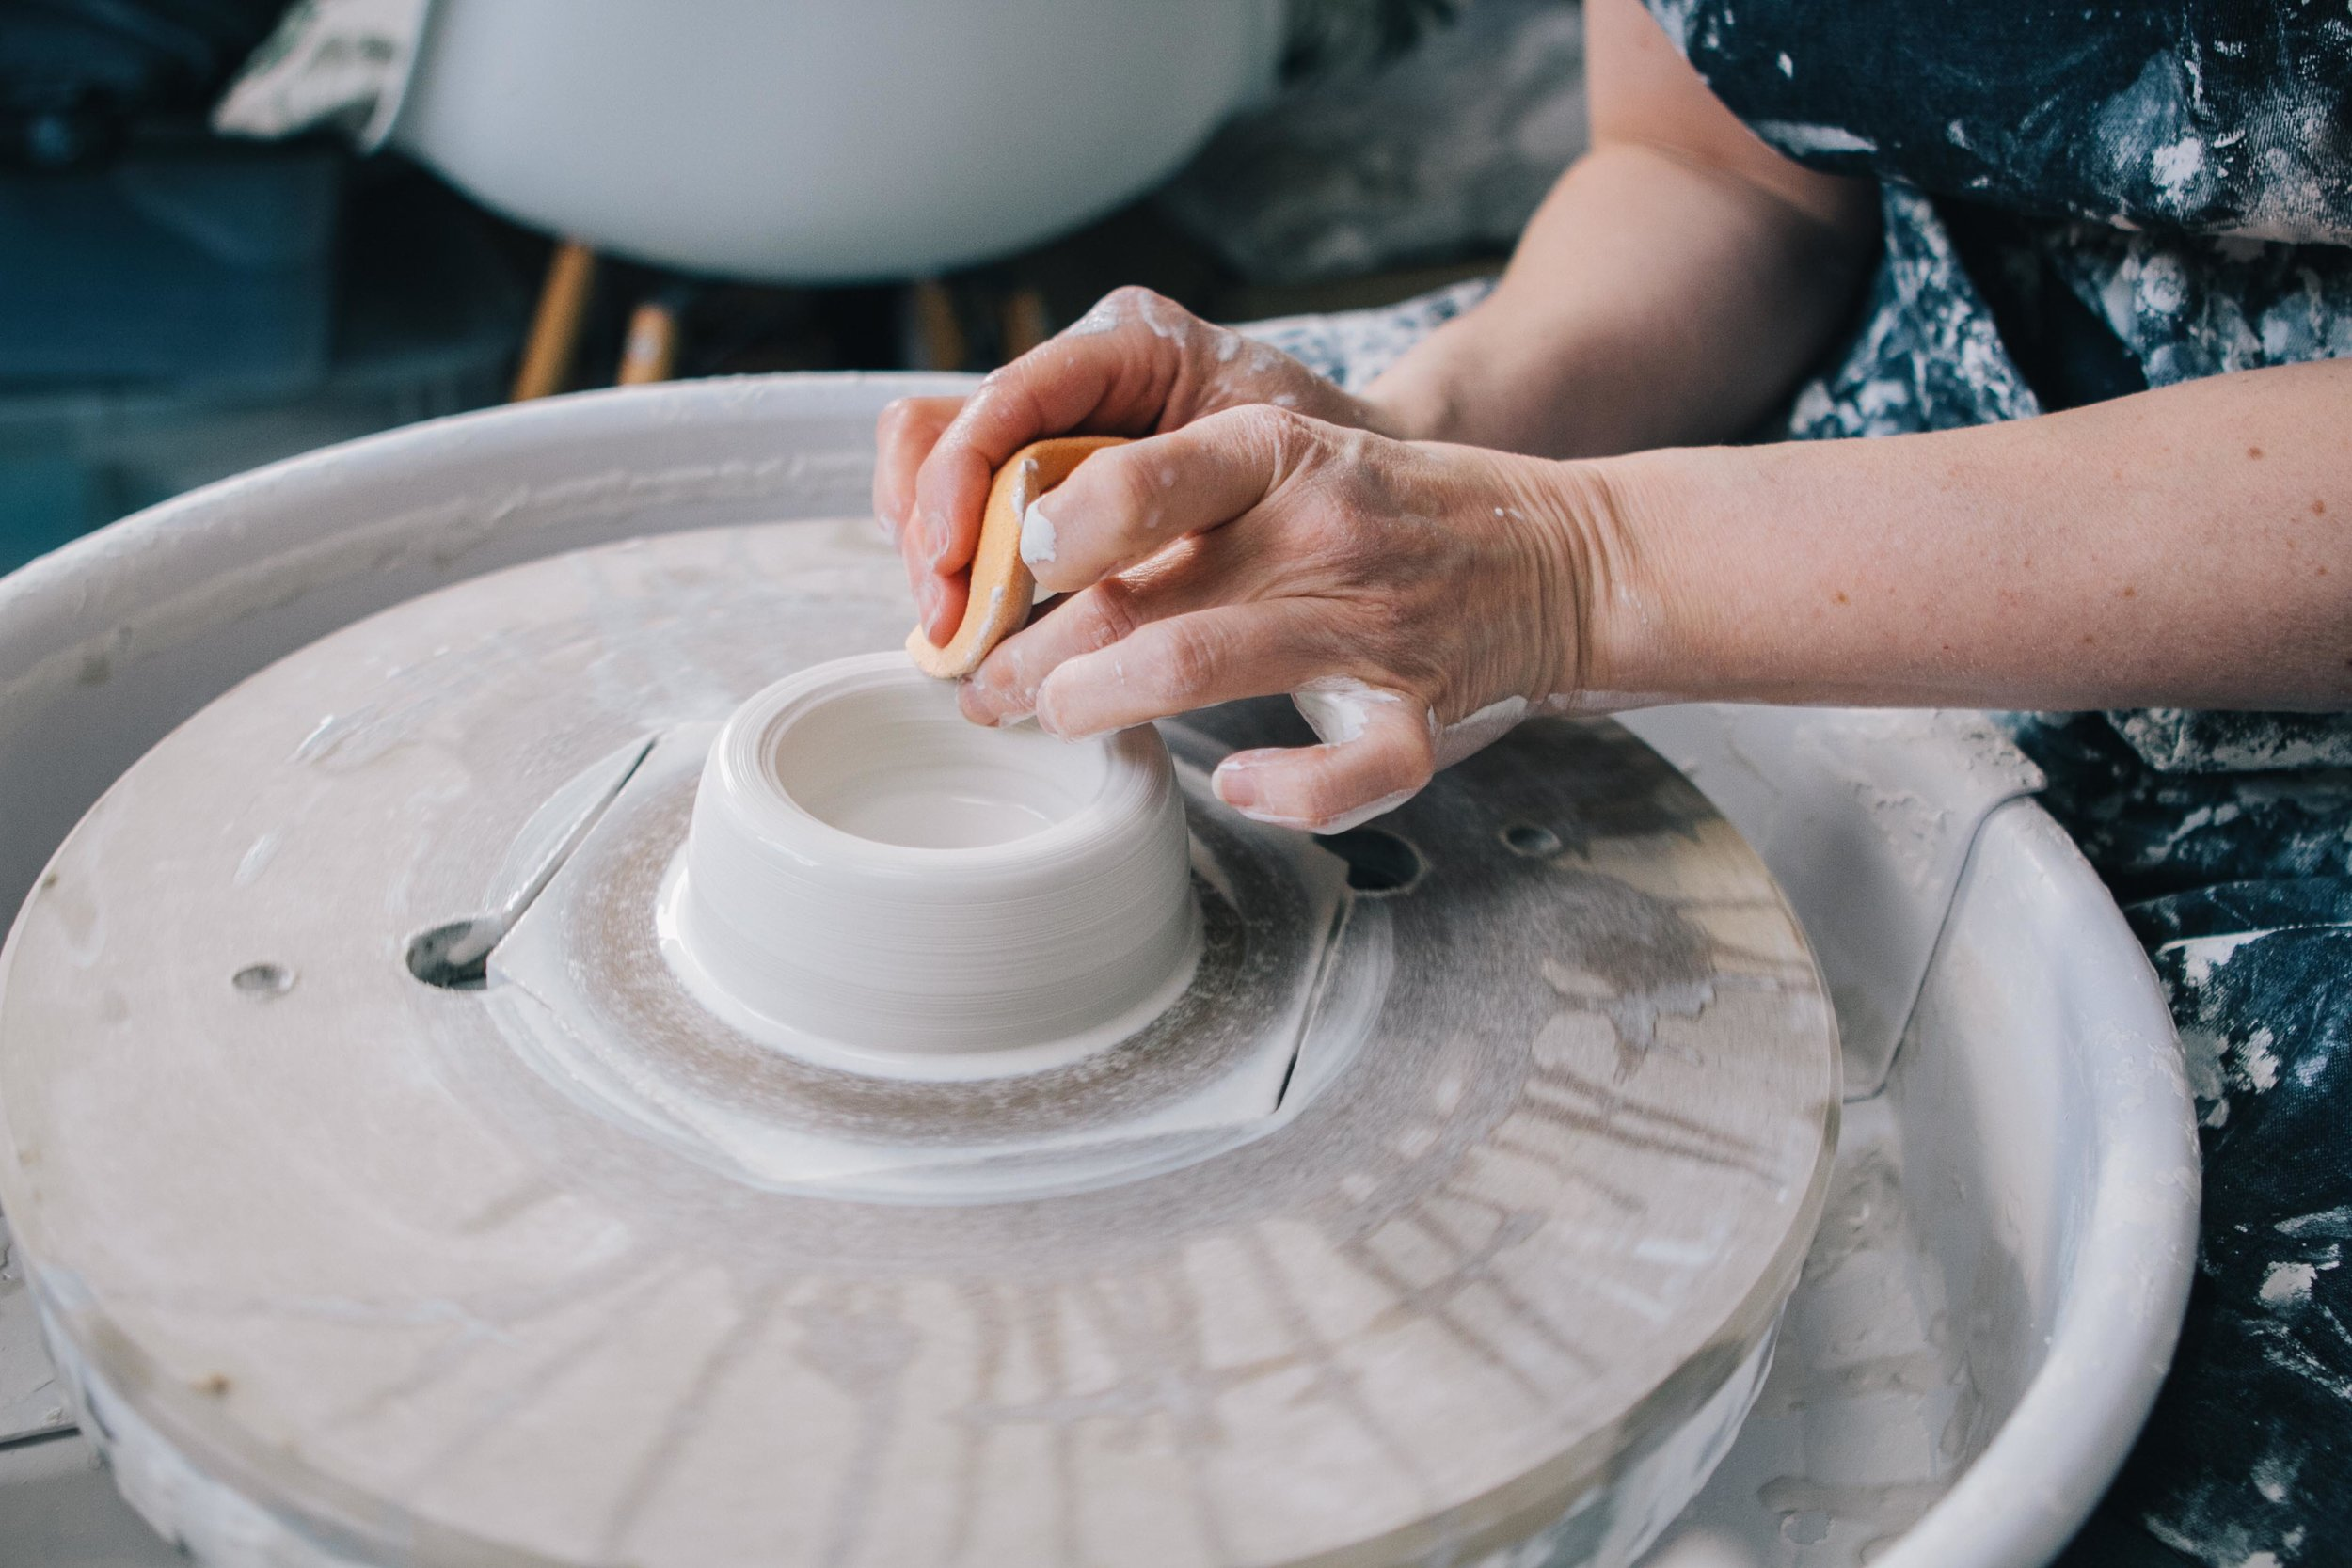 Katie Robins | Ceramic Studio - Carolyn Carter Photography